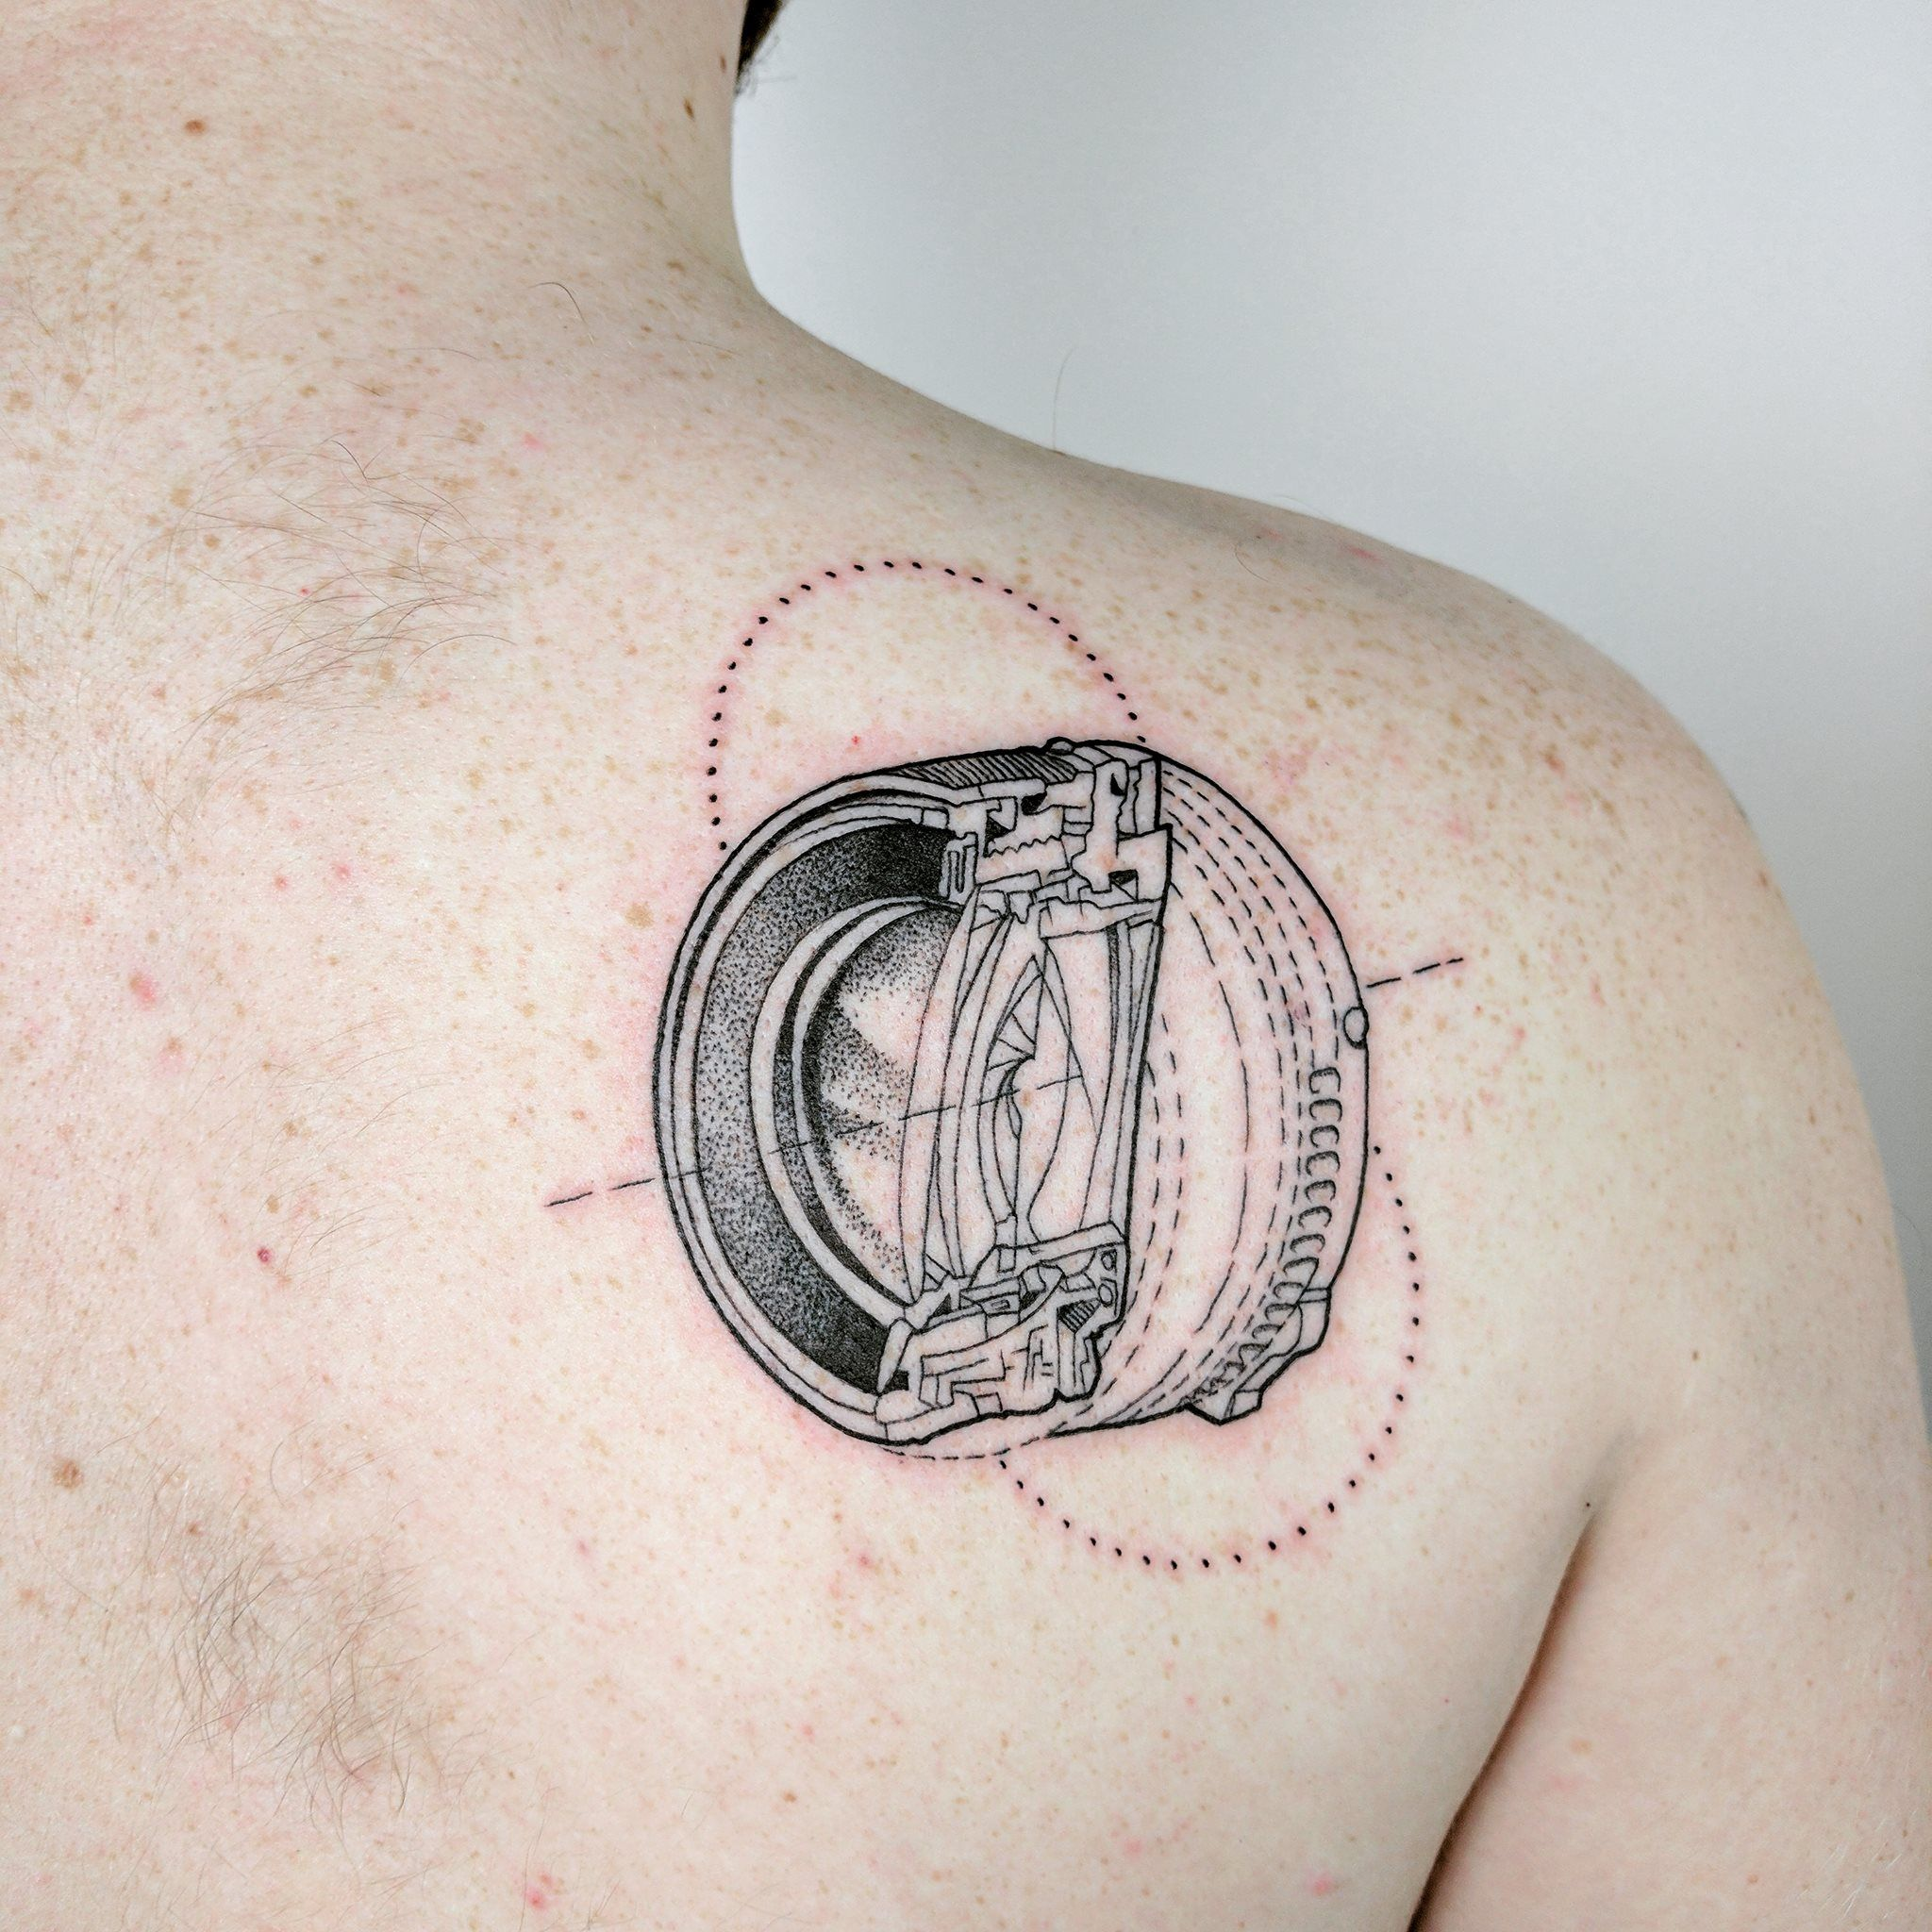 hight resolution of diagram of a camera lens done by alex richardson the village ink toronto